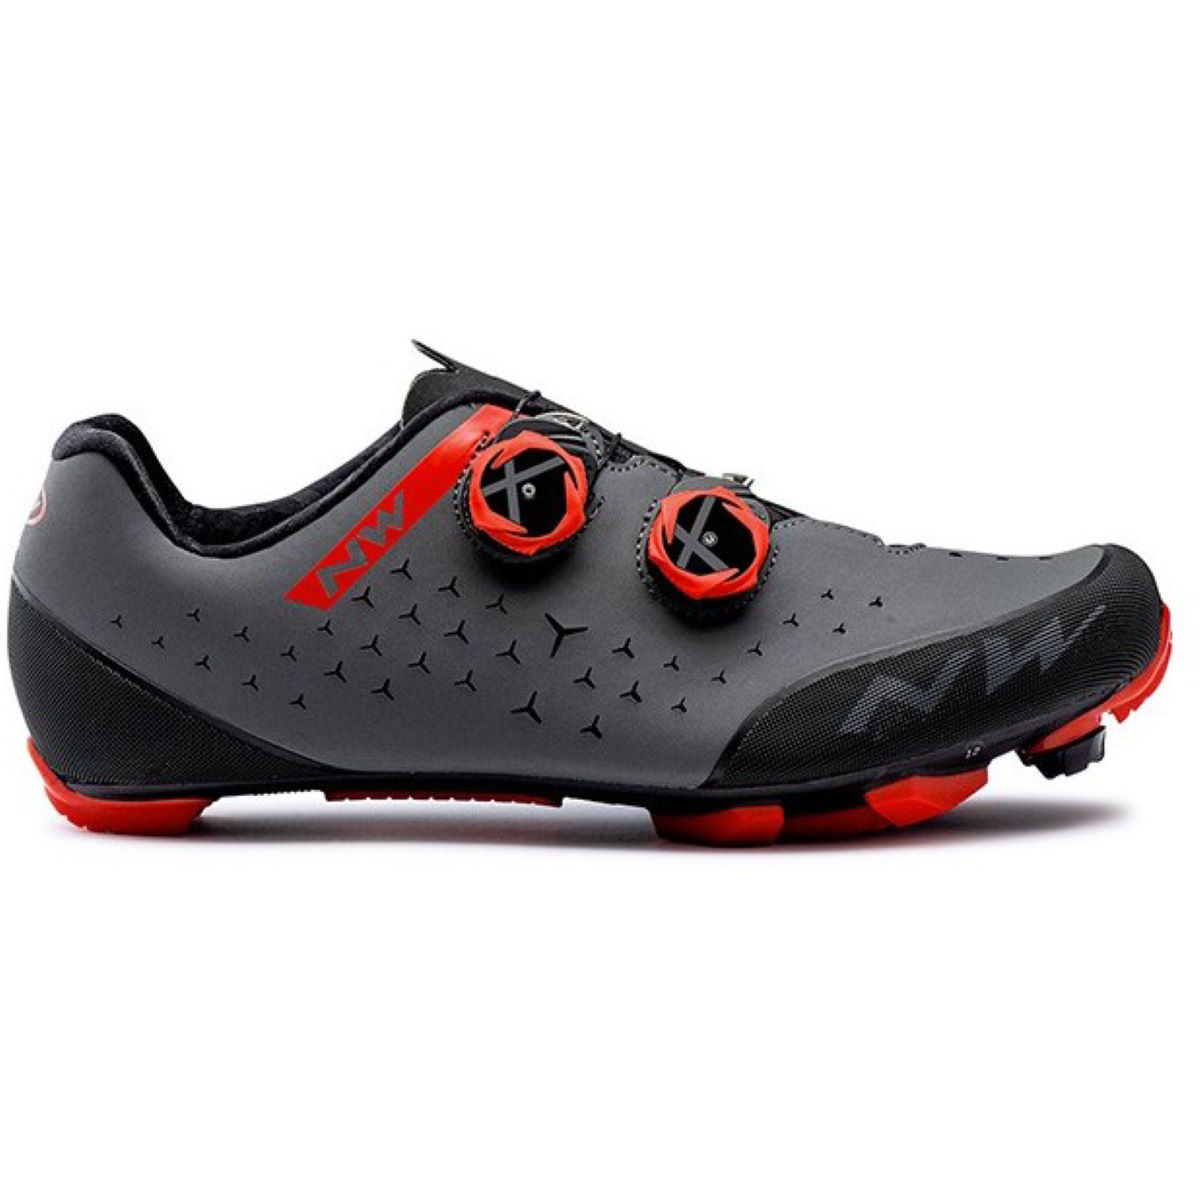 Northwave Rebel Mtb Shoes - 42 Anthracite/red  Cycling Shoes